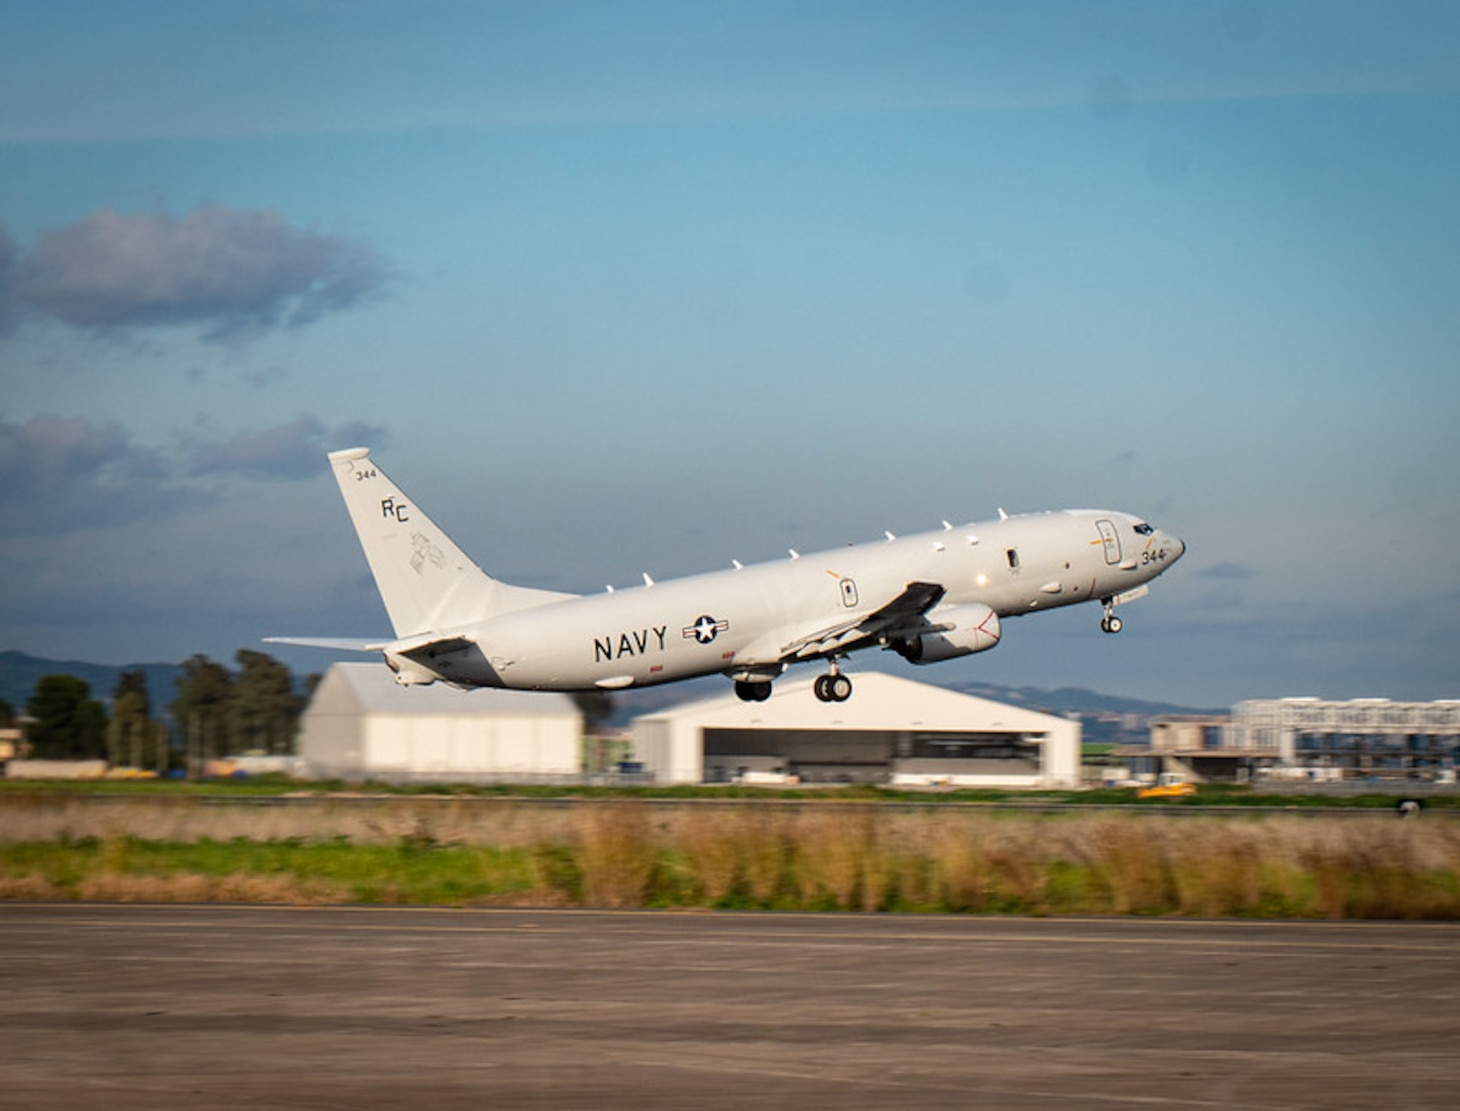 "210128-N-VH871-1159 NAVAL AIR STATION SIGONELLA, Italy (Jan. 28, 2021) A P-8A Poseidon maritime patrol aircraft, assigned to the ""Grey Knights"" of Patrol Squadron (VP) 46, takes off to conduct its mission, Jan. 28, 2021. VP-46 is currently forward-deployed to the U.S. Sixth Fleet area of operations and is assigned to Commander, Task Force 67, responsible for tactical control of deployed maritime patrol and reconnaissance squadrons throughout Europe and Africa. U.S. Sixth Fleet, headquartered in Naples, Italy, conducts a full spectrum of joint and naval operations, often in concert with allied and interagency partners, in order to advance U.S. national security interests and stability in Europe and Africa. (U.S. Navy photo by Mass Communication Specialist 2nd Class Austin Ingram/ Released)"